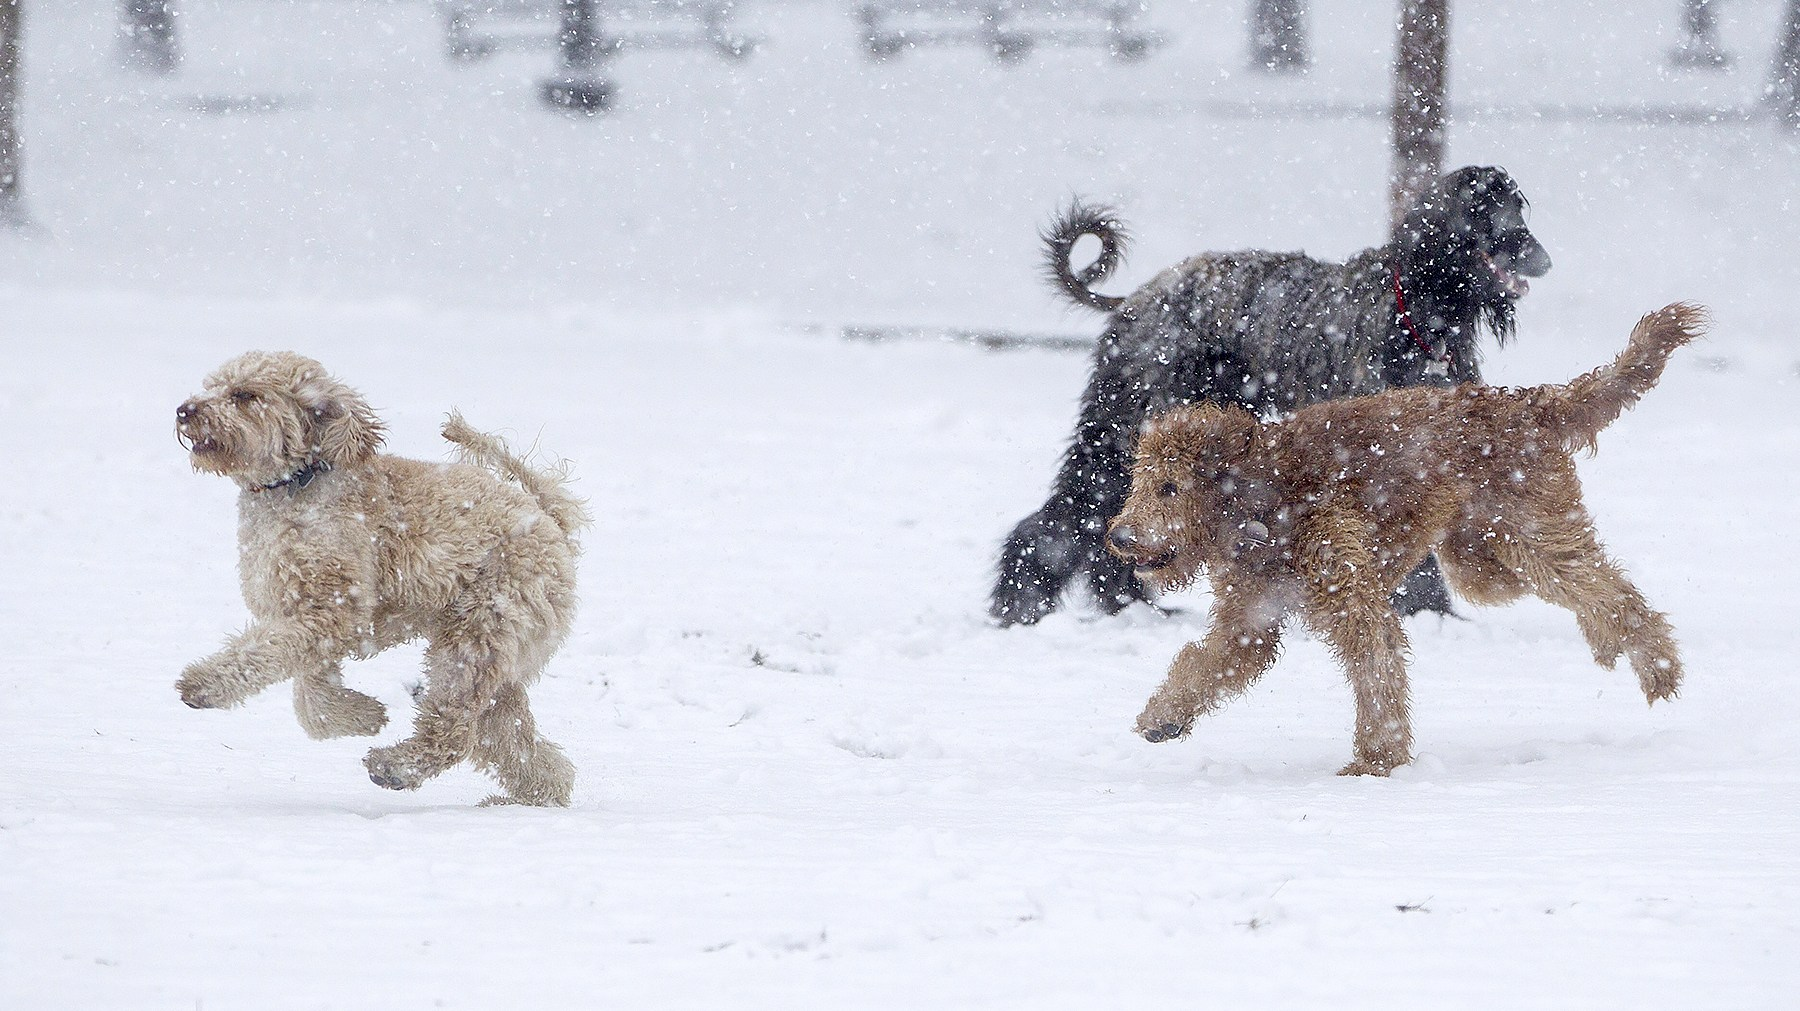 Dogs play in the snow on the Boston Common as Winter Storm Stella bears down on March 14, 2017 in Boston, Massachussets.